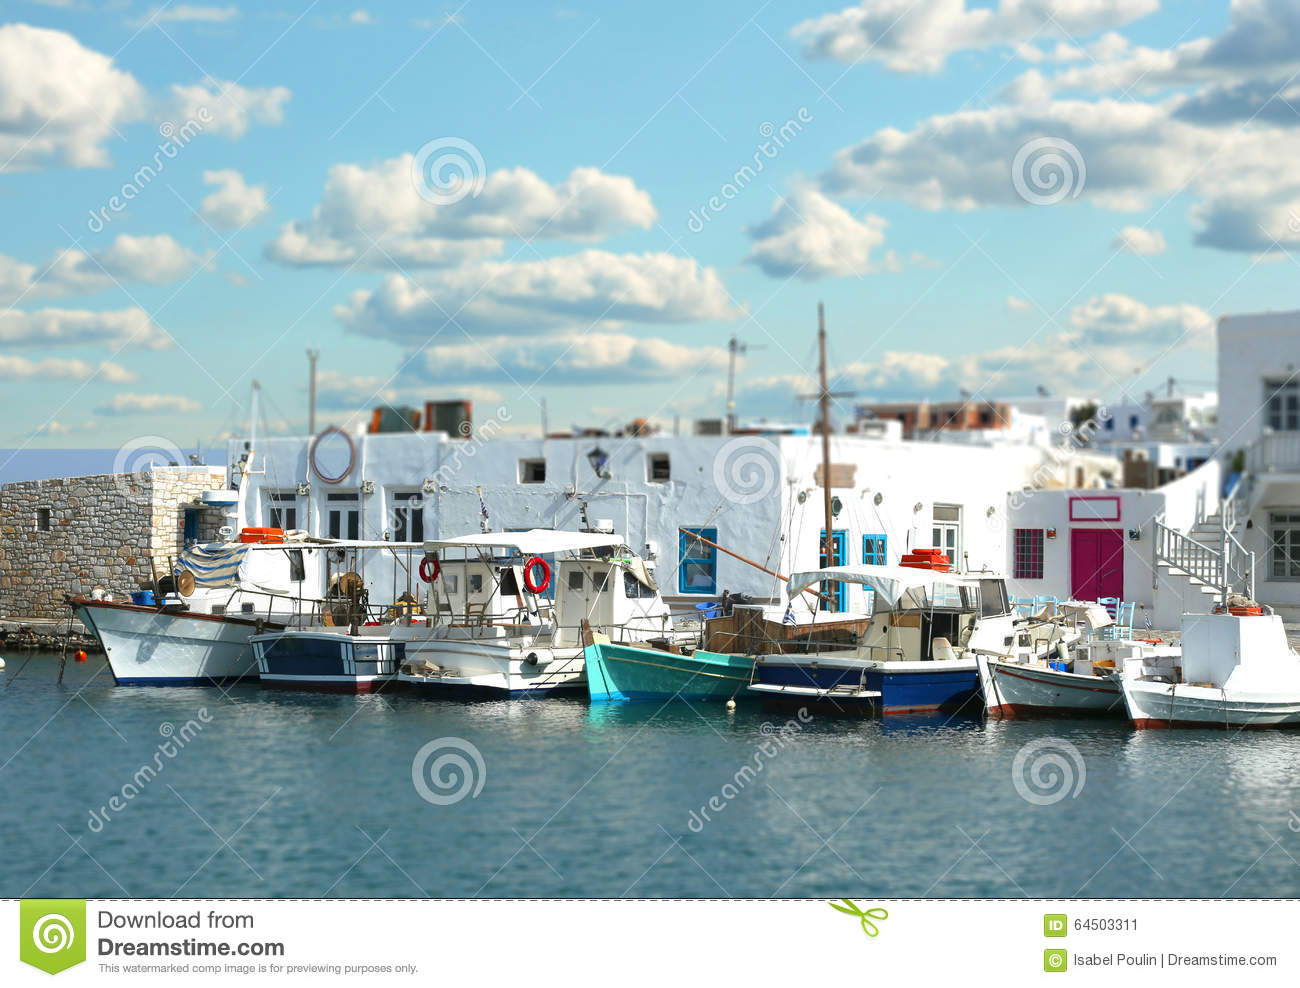 Boats at the pier with tilt effect in Paros, Greece